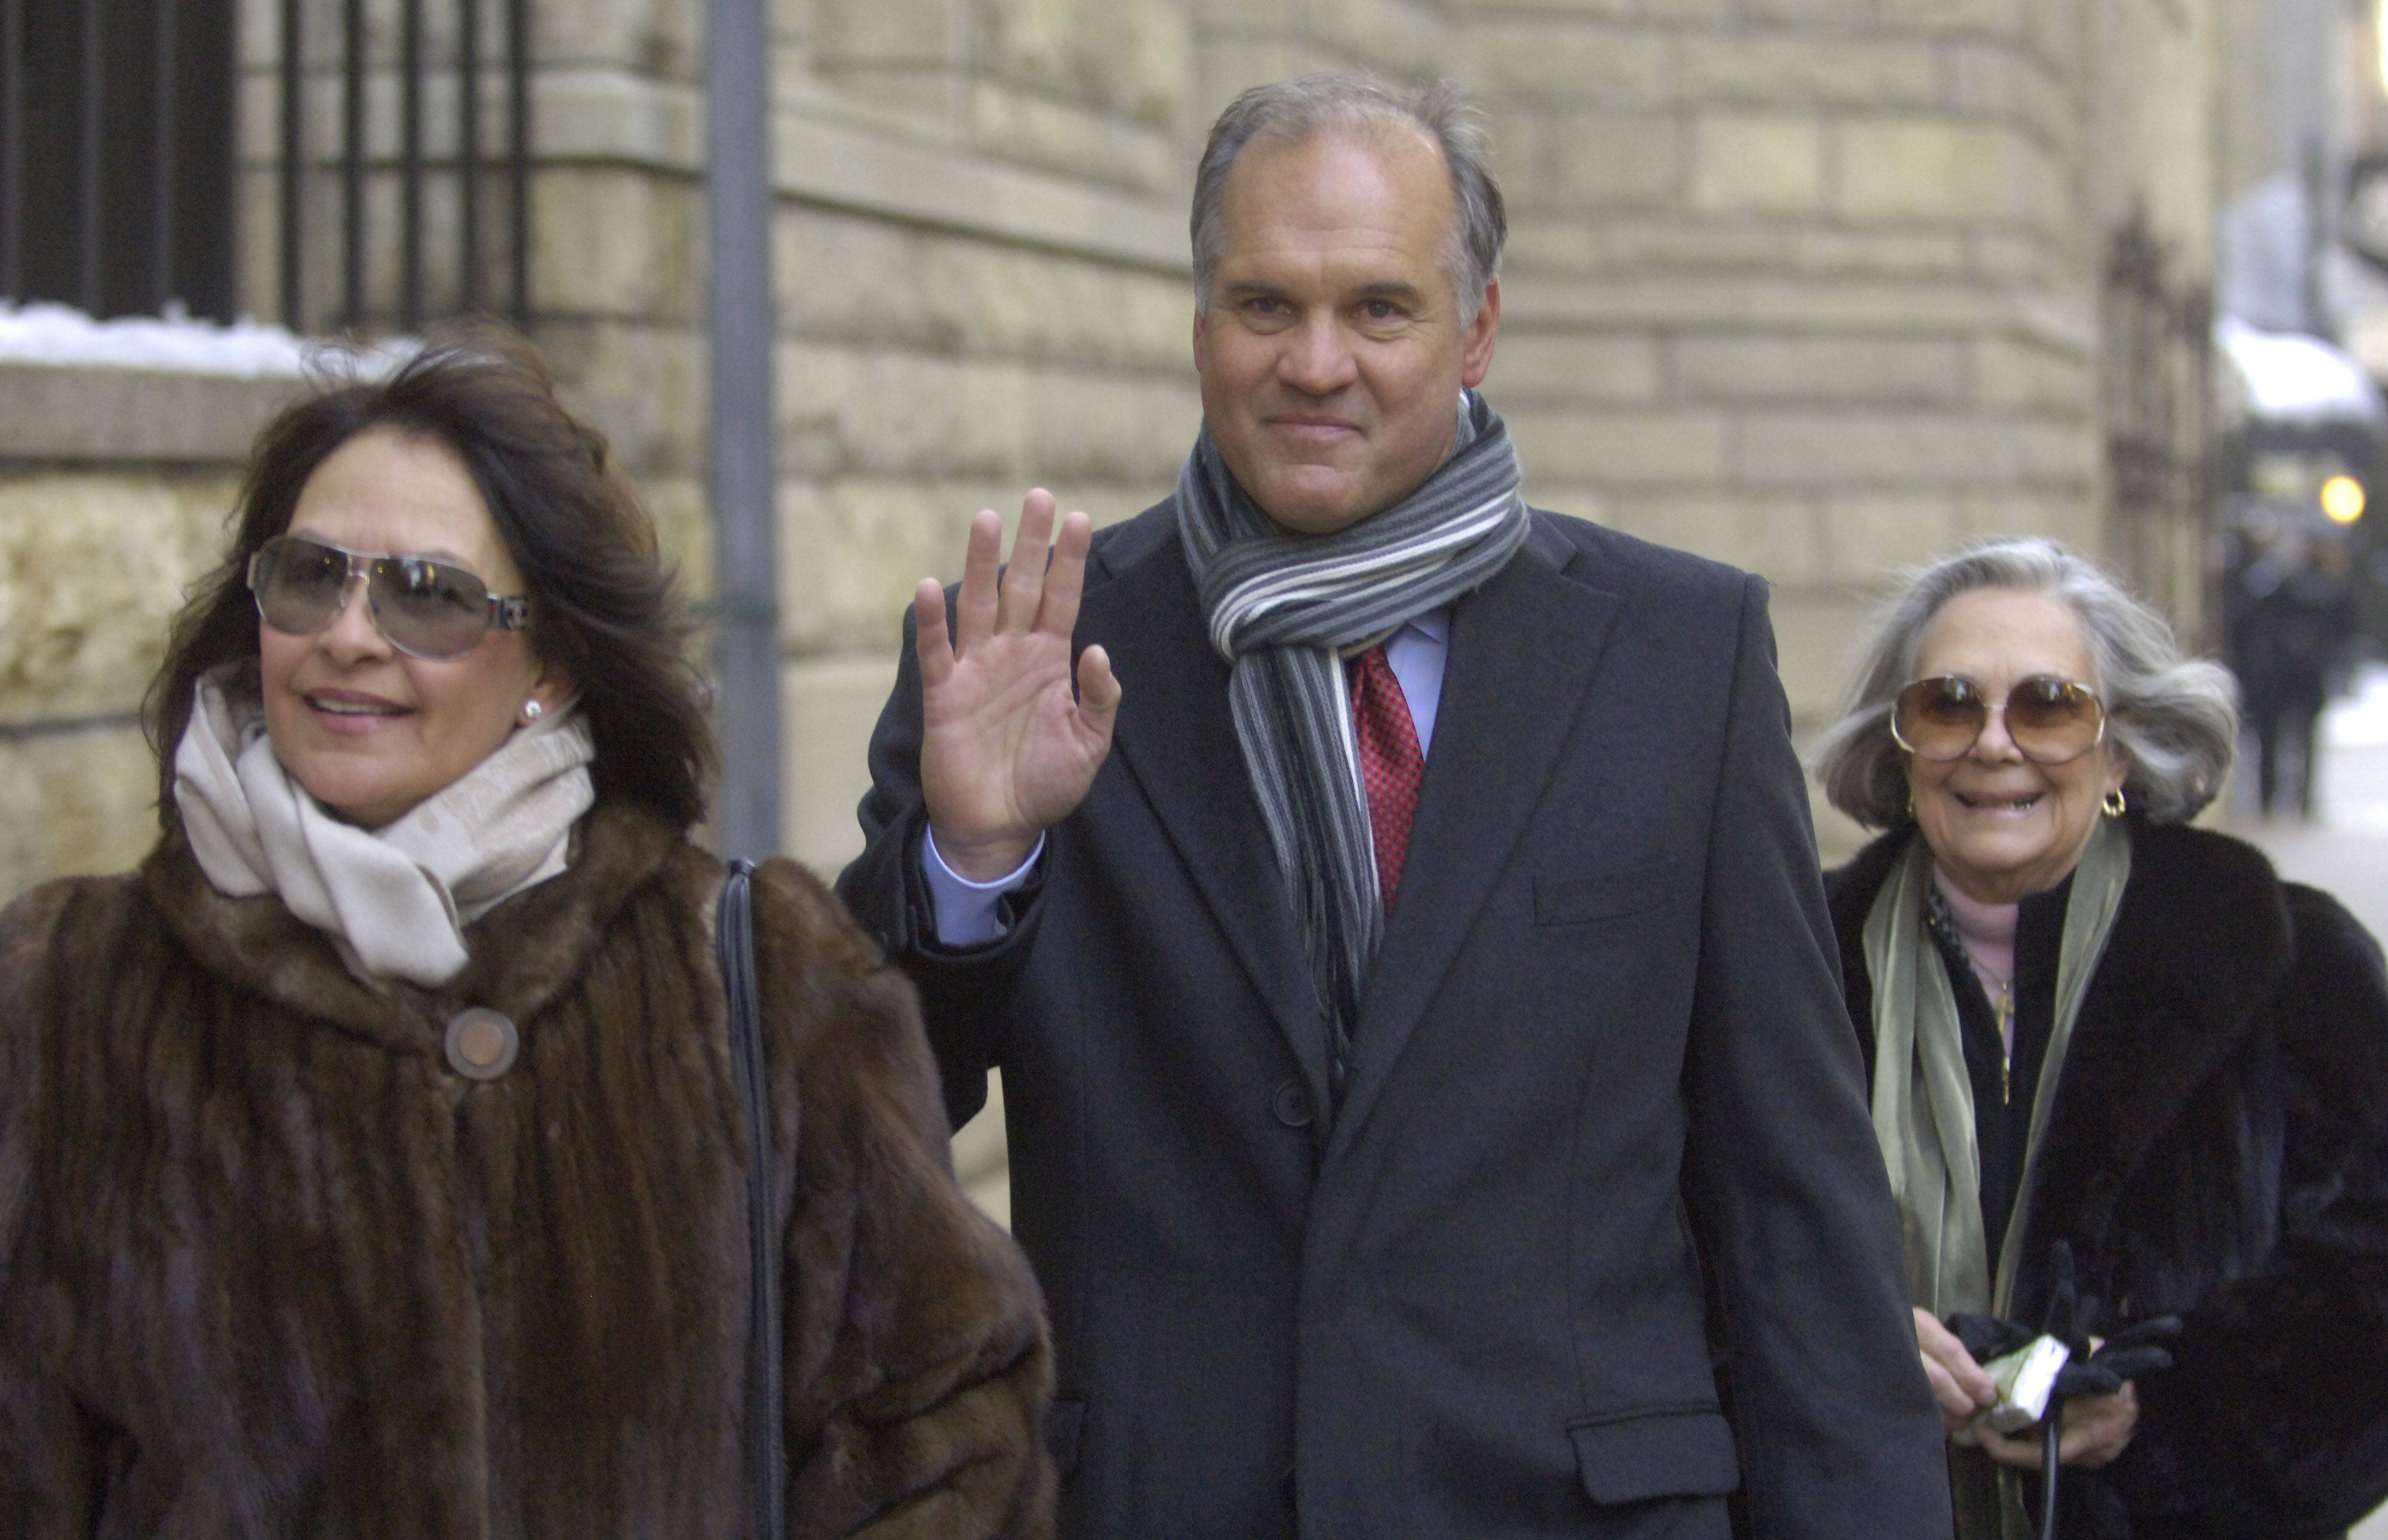 Cubs Hall of Famer Ryne Sandberg arrives with his wife, Margaret, left, and Dutchie Caray before Ron Santo's funeral on Friday.